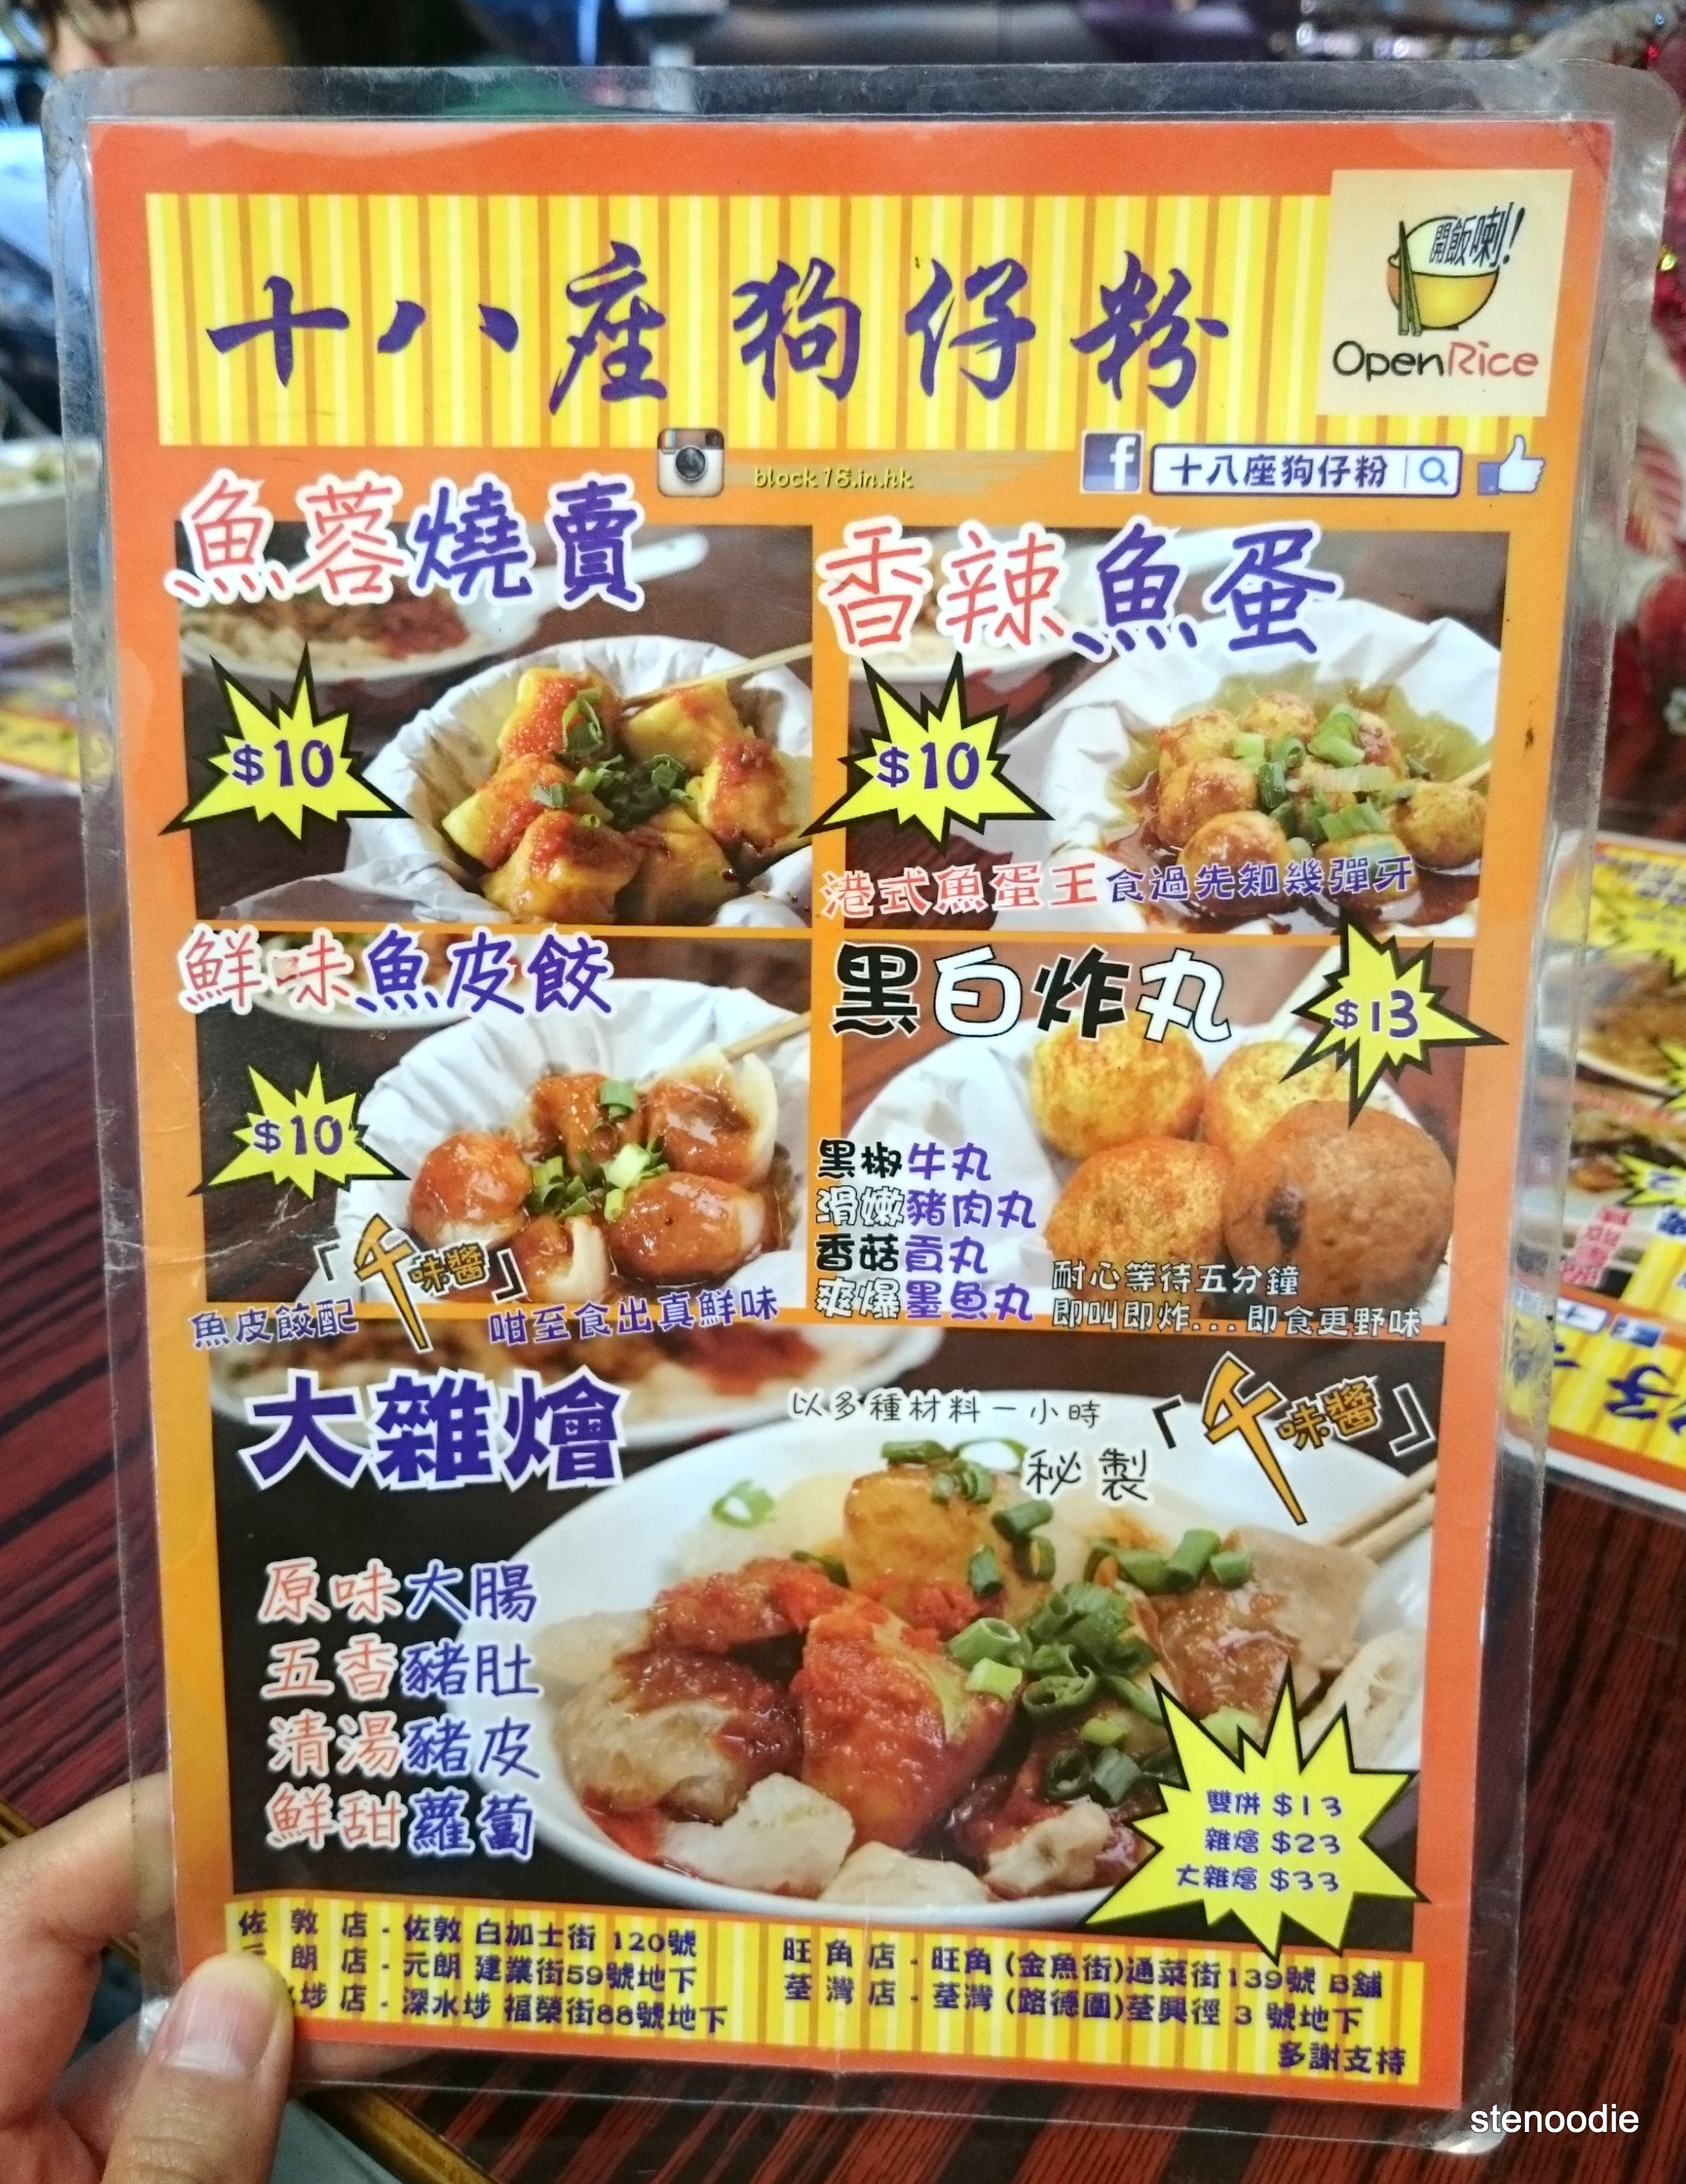 Block 18 Doggie's Noodle menu and prices